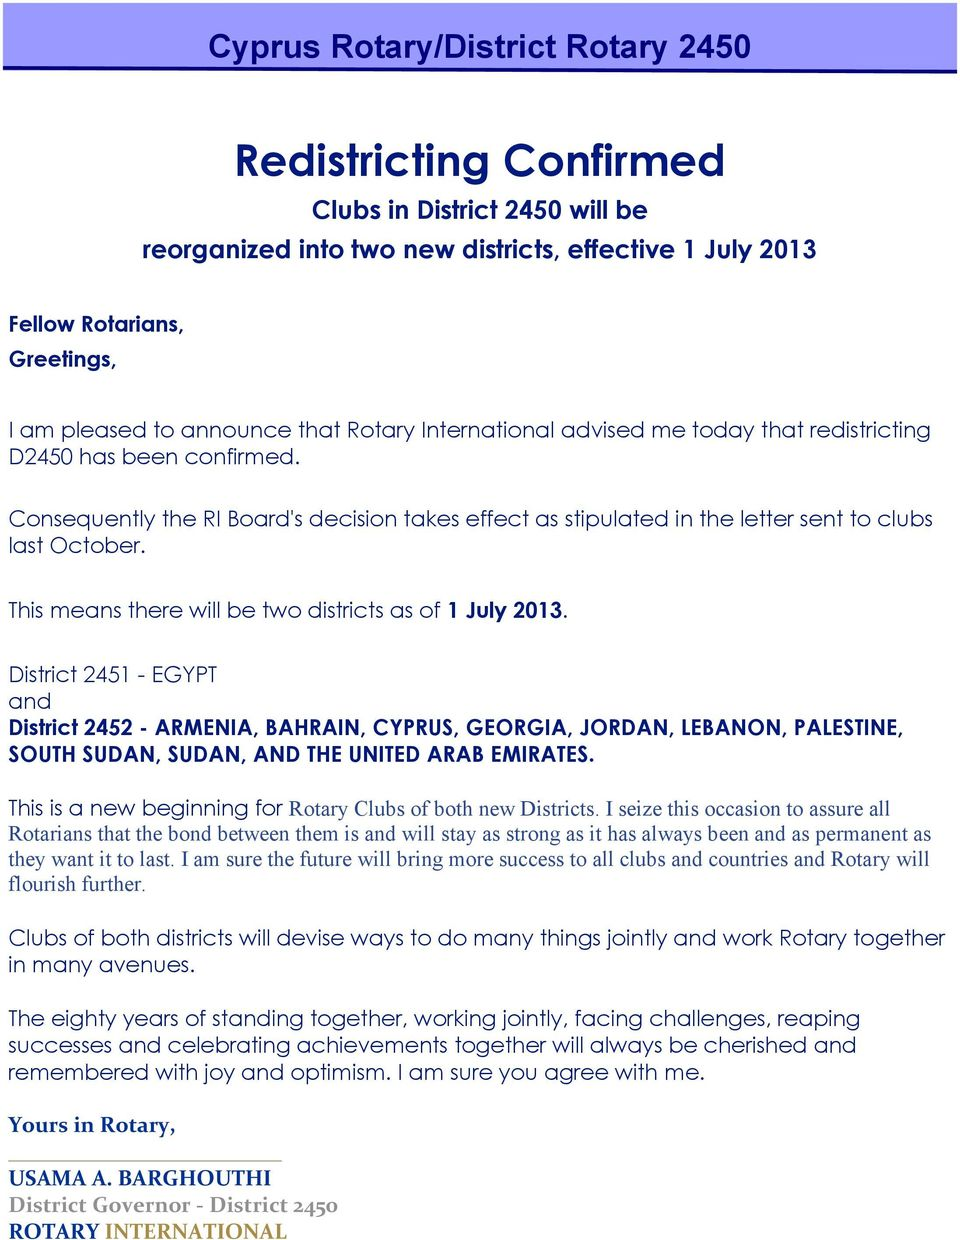 Consequently the RI Board's decision takes effect as stipulated in the letter sent to clubs last October. This means there will be two districts as of 1 July 2013.